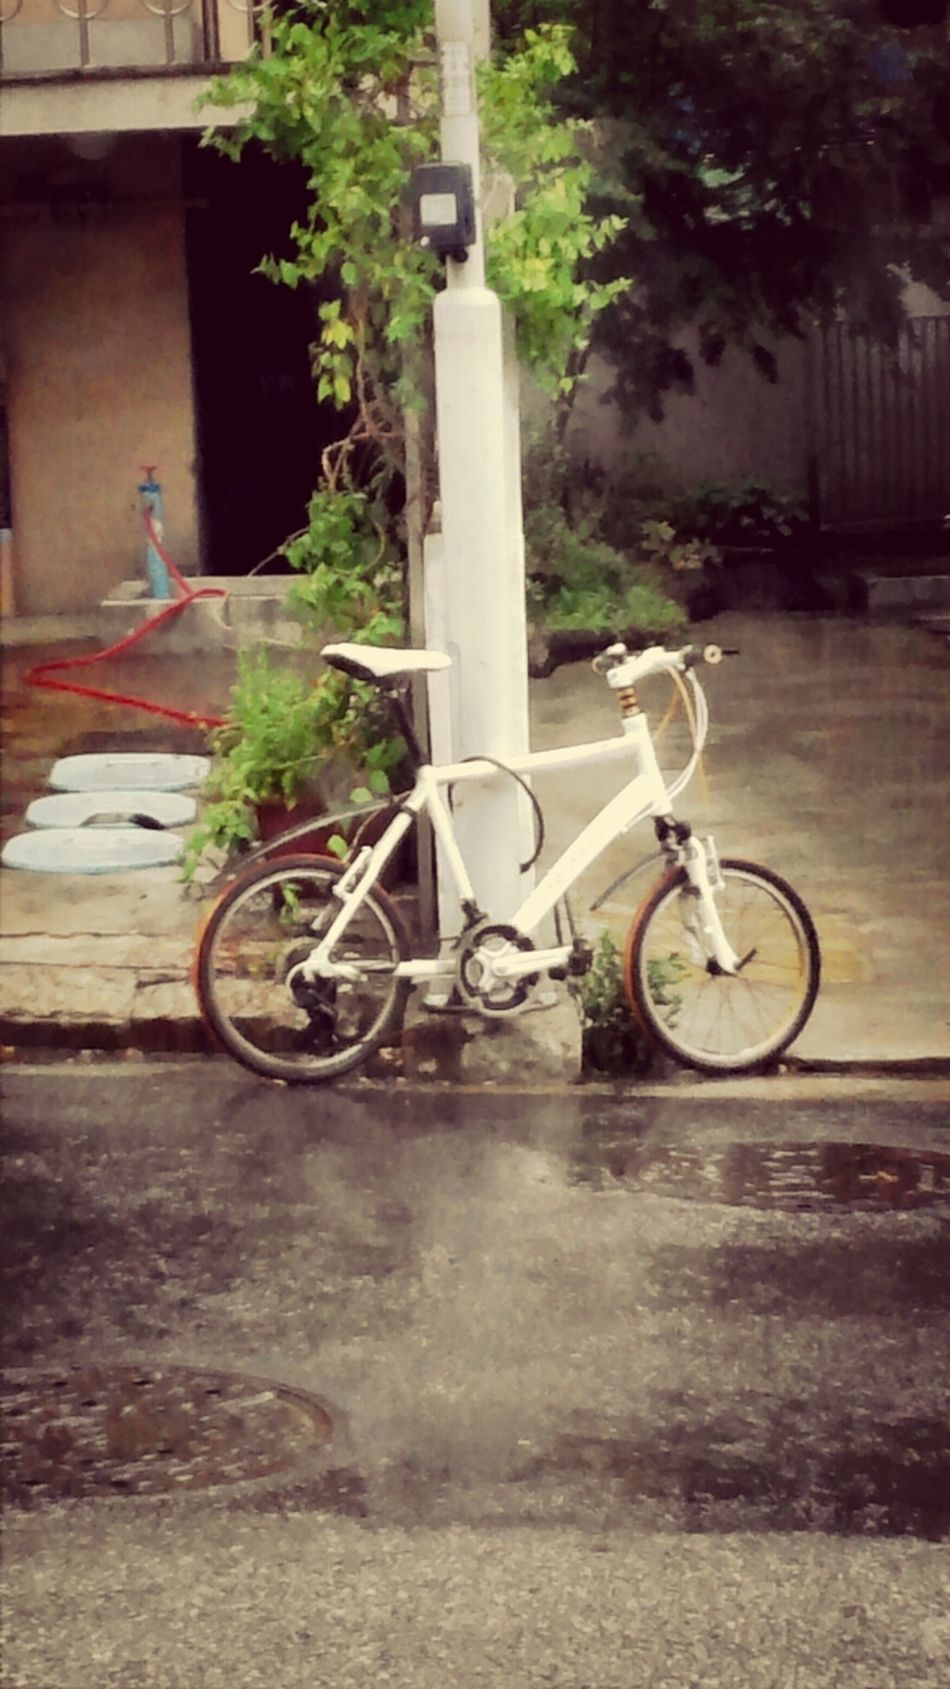 Hey, Bike ! A lonley Bycicle is Waiting for its owner in a Rainy Day...